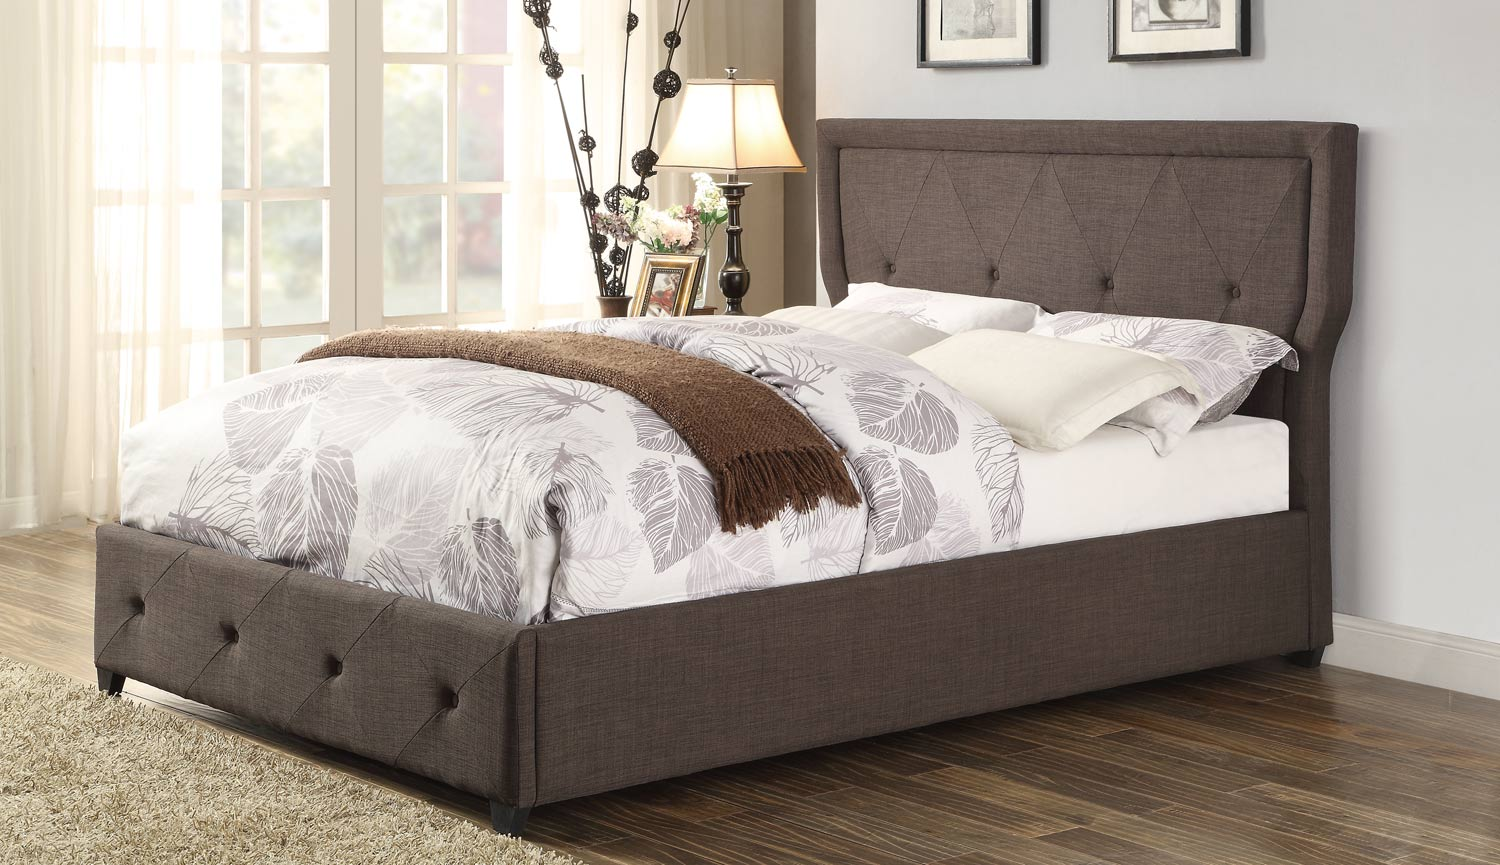 Homelegance Thain Upholstered Bed - Dark Grey